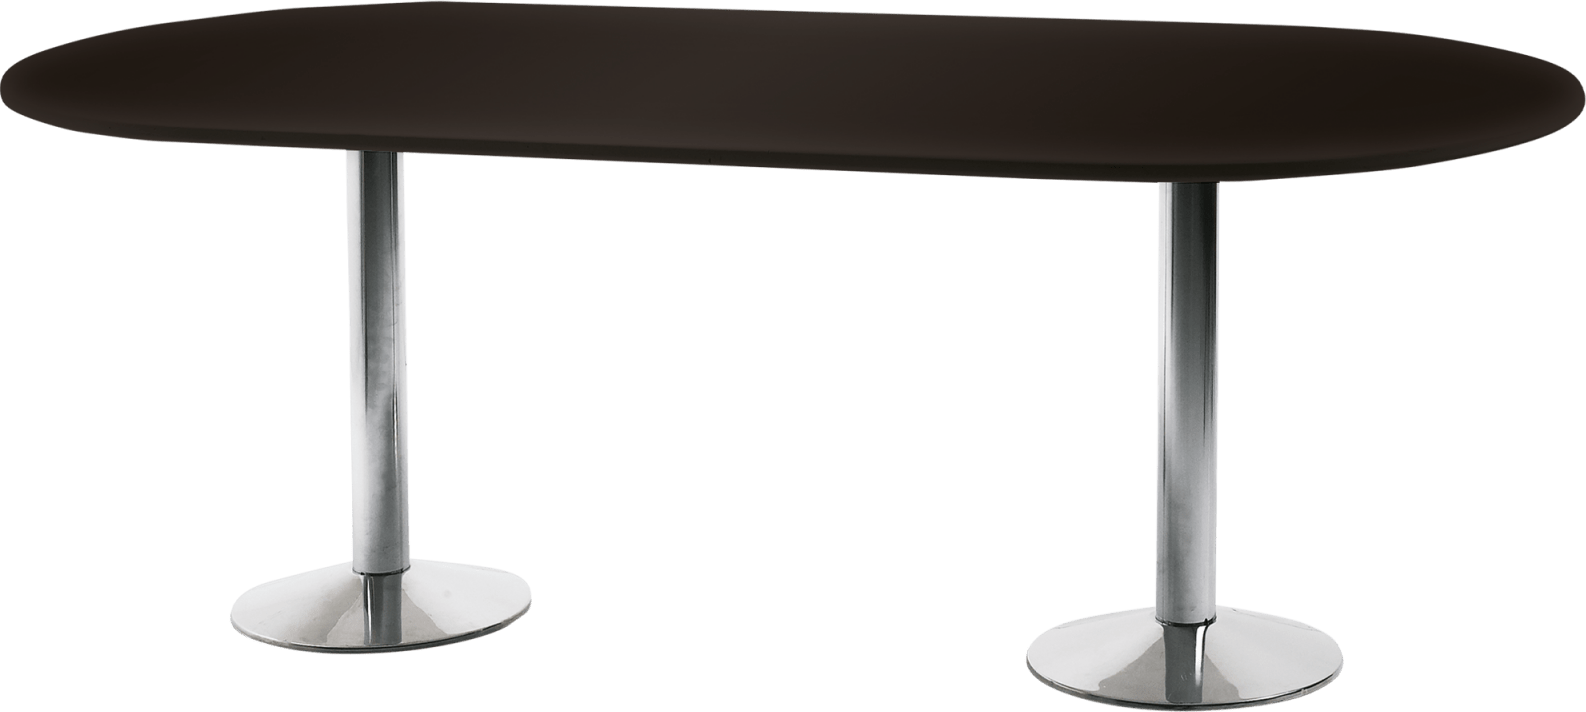 Picture of: Tuscany Oval Conference Table Conference Tables Dzine Furnishing Solutions Ltd